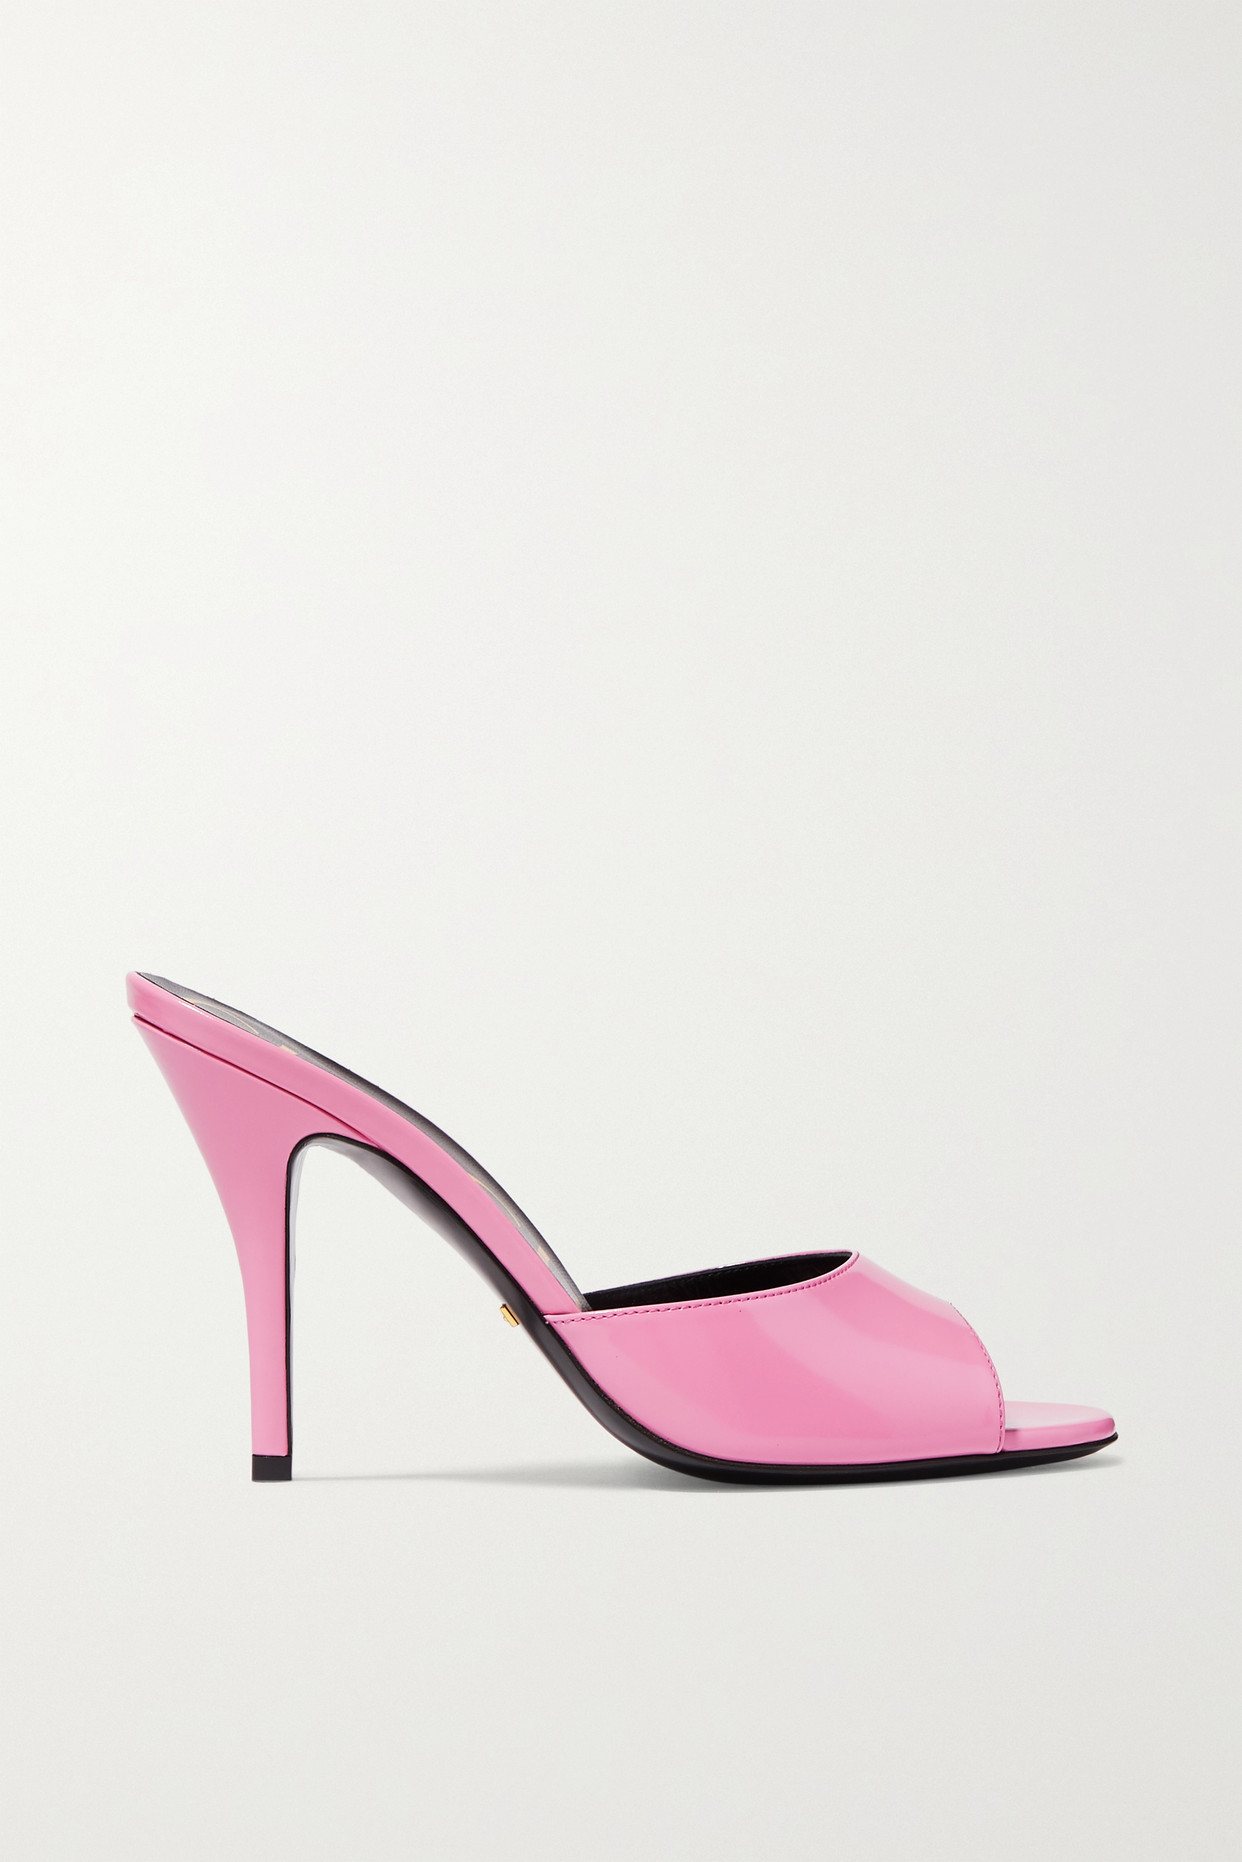 GUCCI - Scarlet Glossed-leather Mules - Pink - IT35